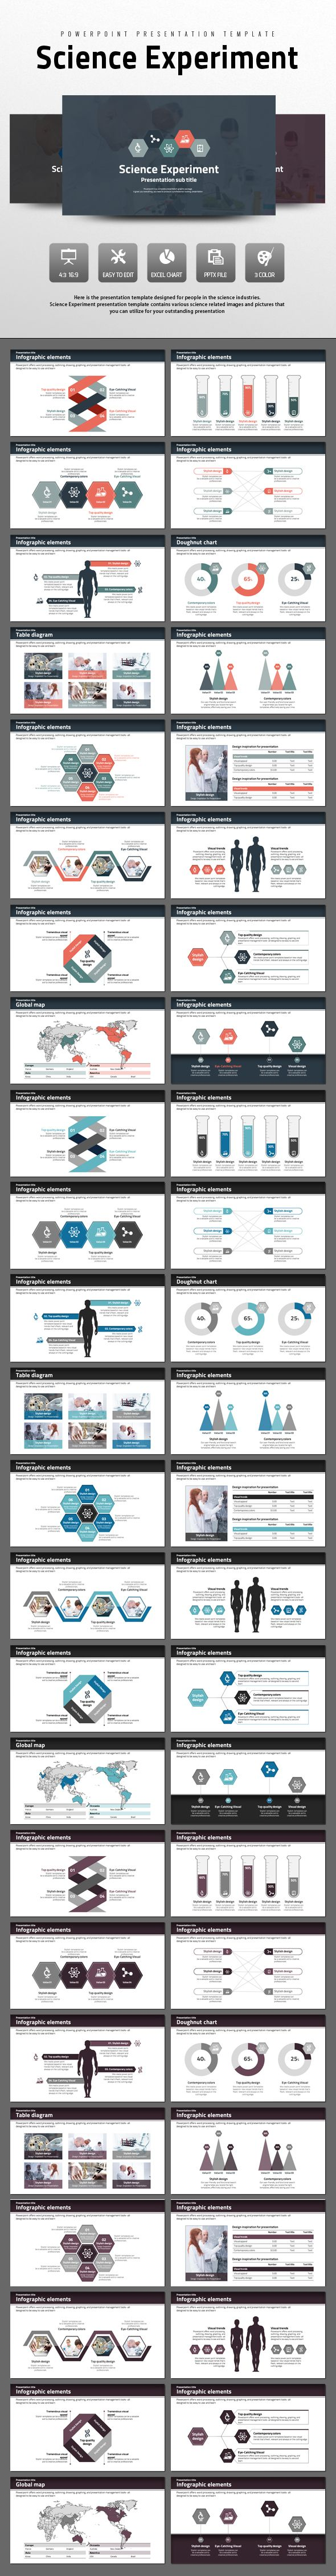 science experiment (powerpoint templates) | science experiments, Powerpoint templates